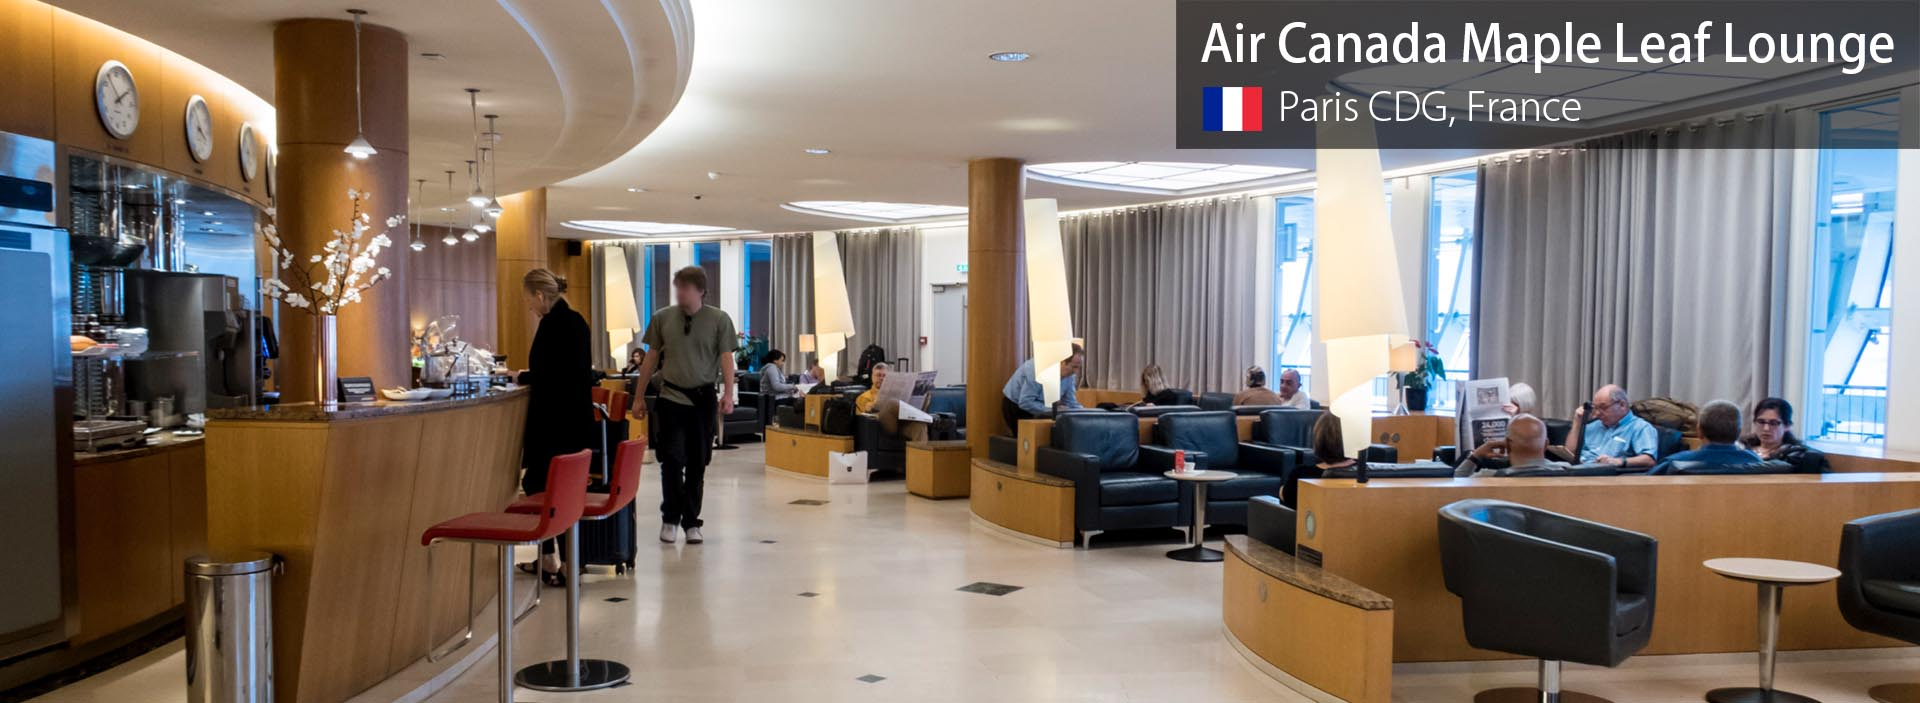 Lounge Review: Air Canada Maple Leaf Lounge at Paris Charles de Gaulle